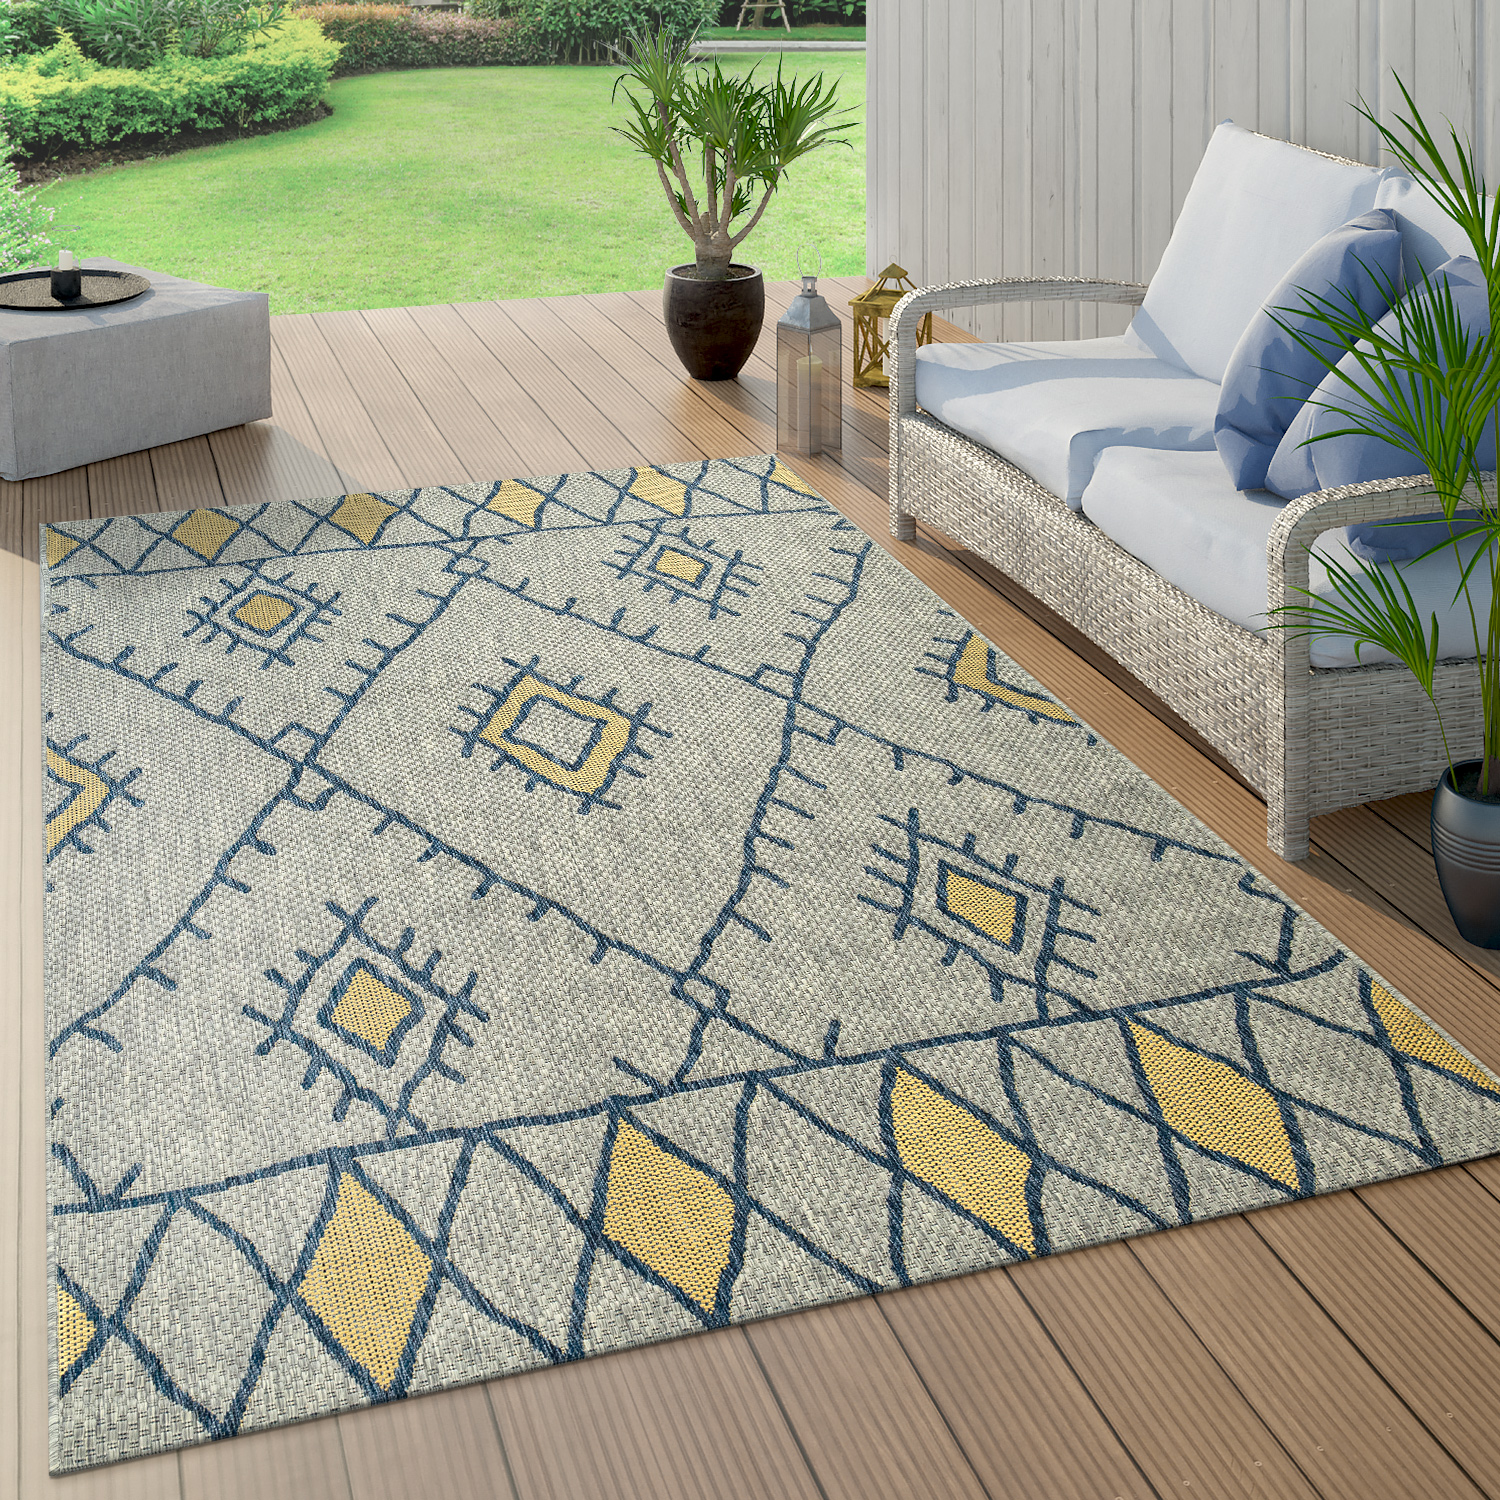 Indoor & Outdoor Rug Flat-Weave Geometric Abstract Diamond Design Ethnic Blue